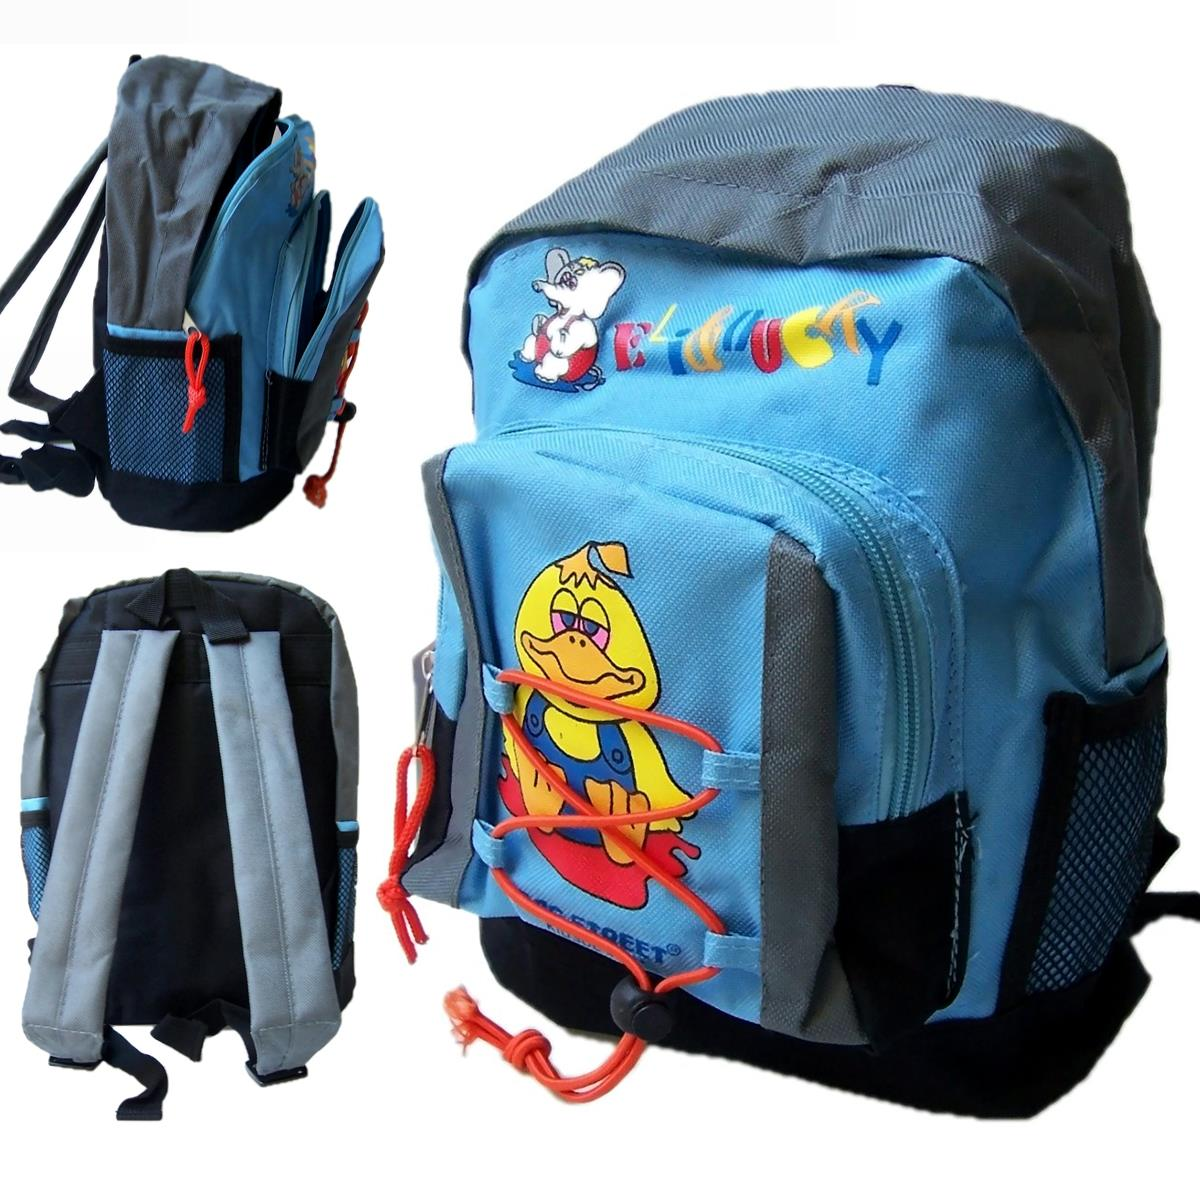 rucksack kinder freizeit reise kindergarten kinderrucksack m dchen jungen vru2 ebay. Black Bedroom Furniture Sets. Home Design Ideas